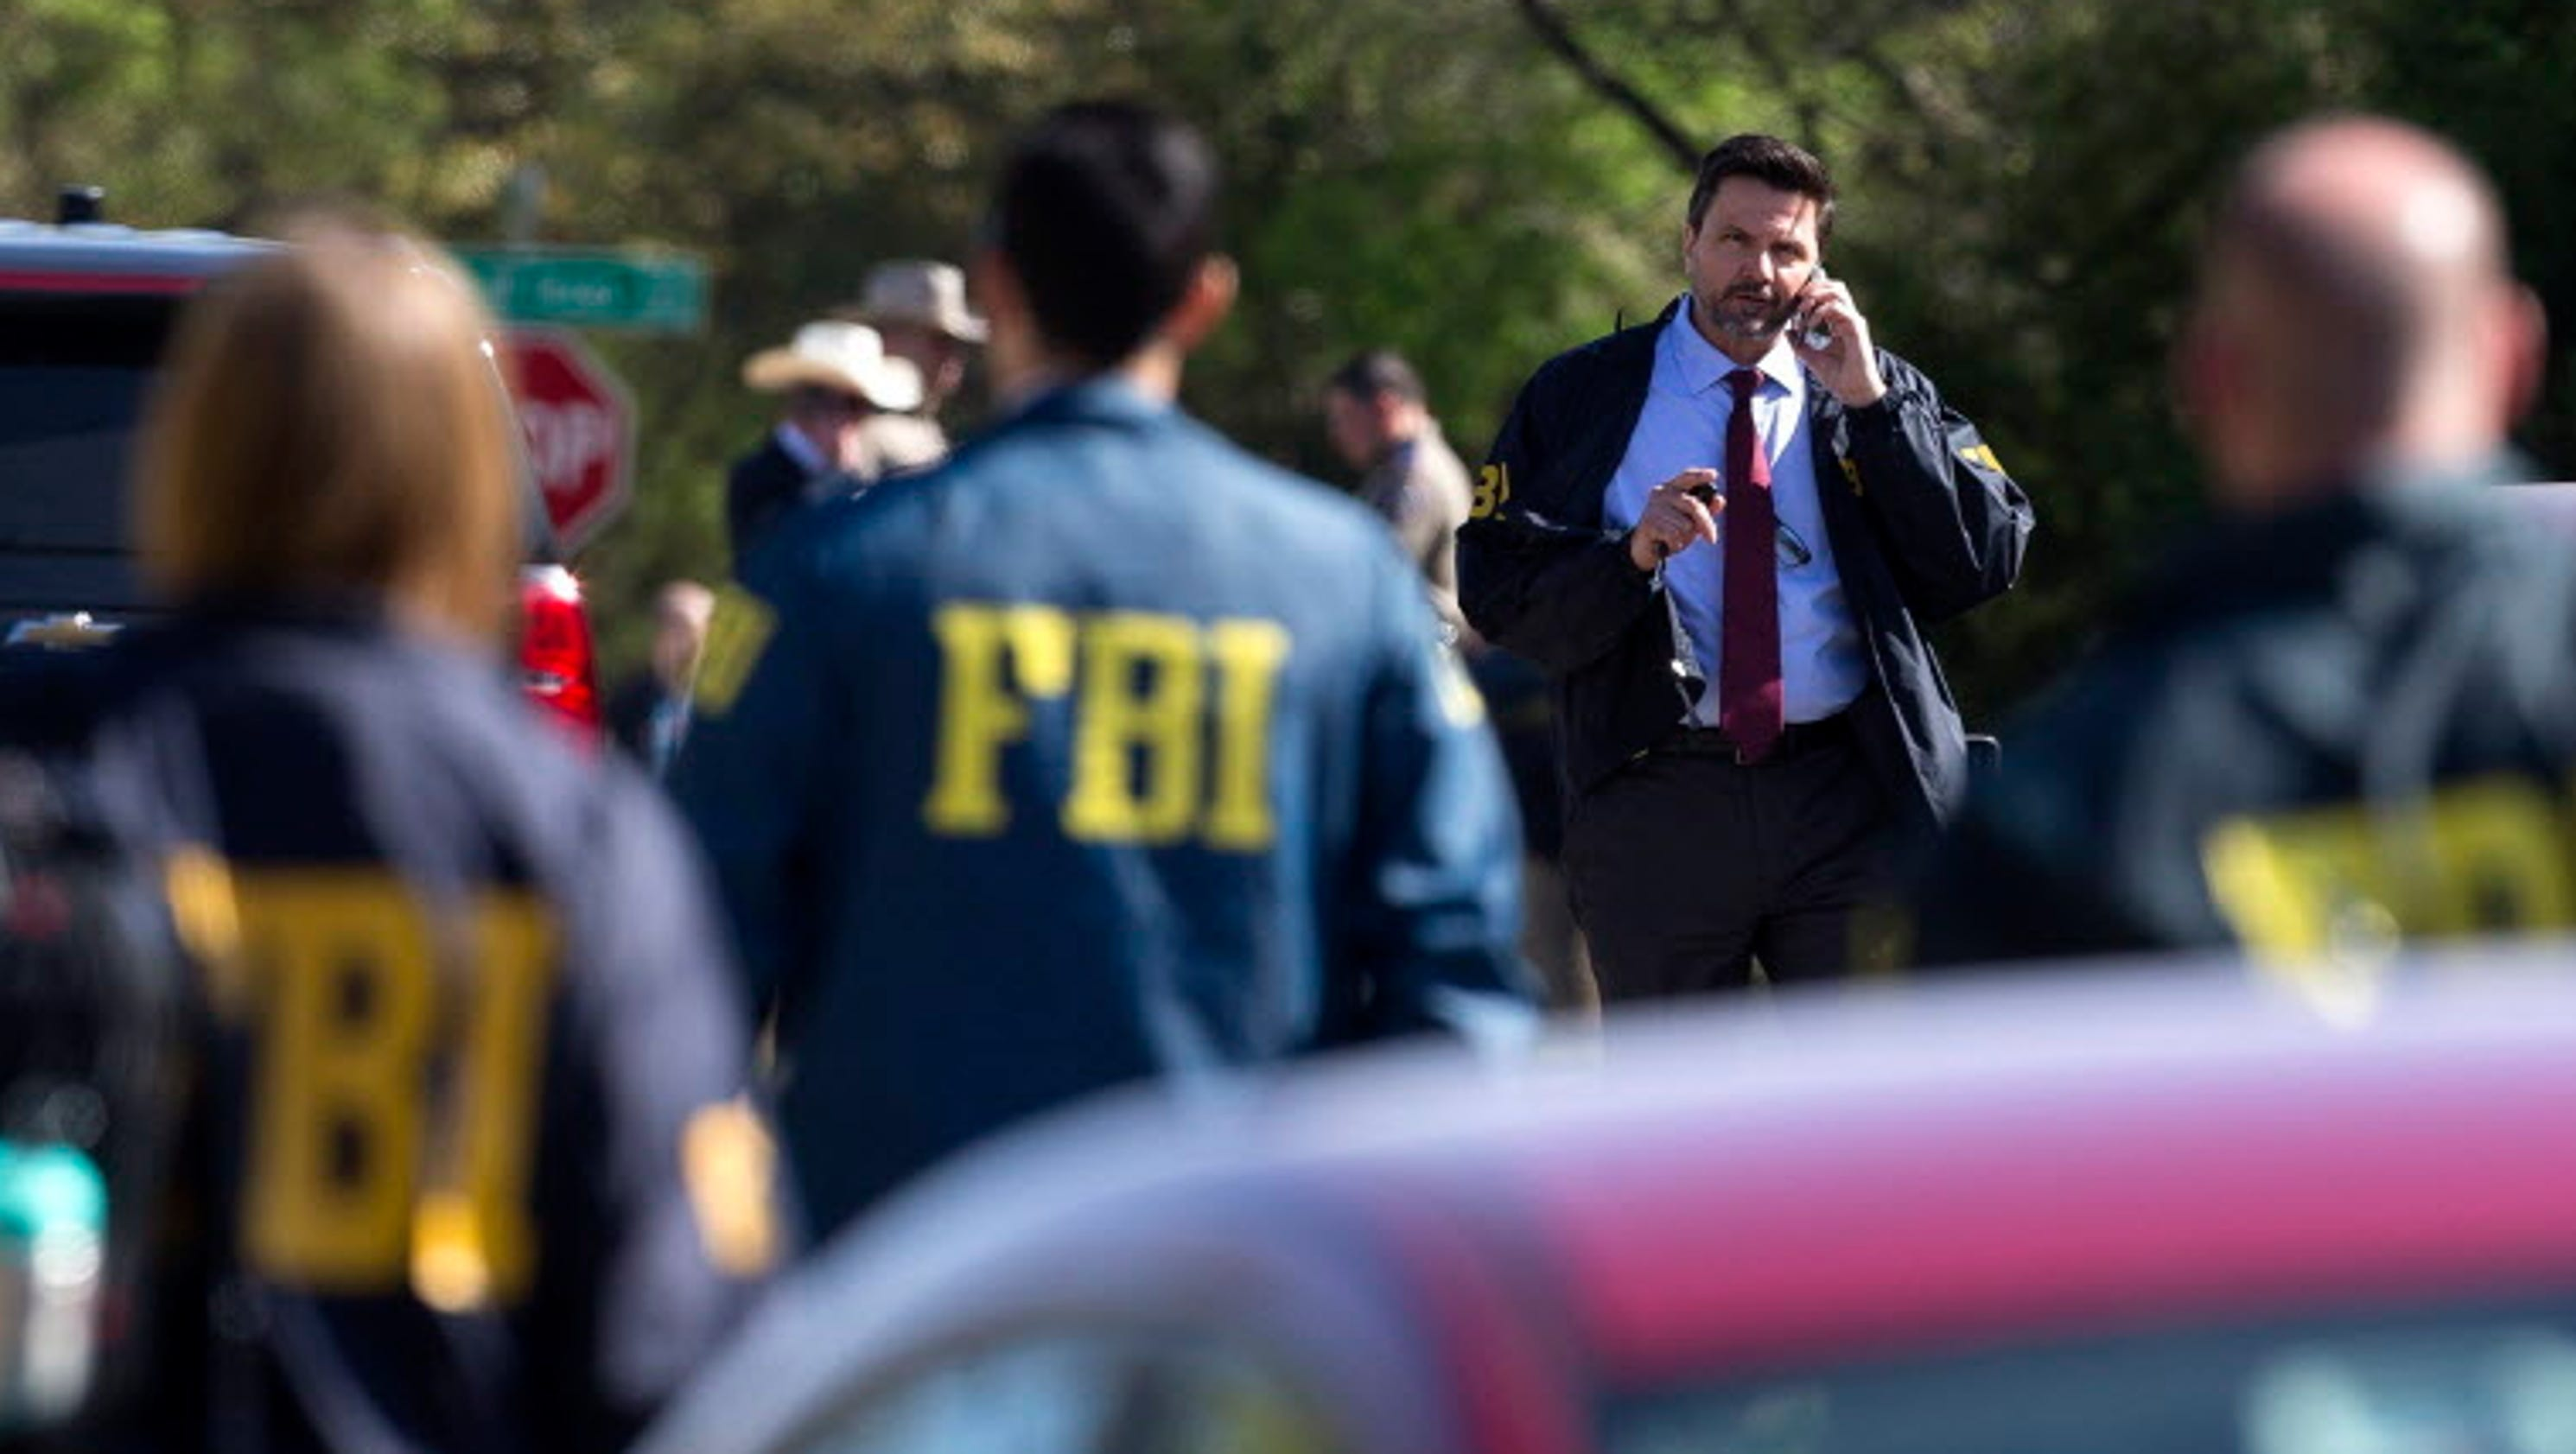 Austin bombings: Another reported package explosion injures 1, hours after two package bombs found